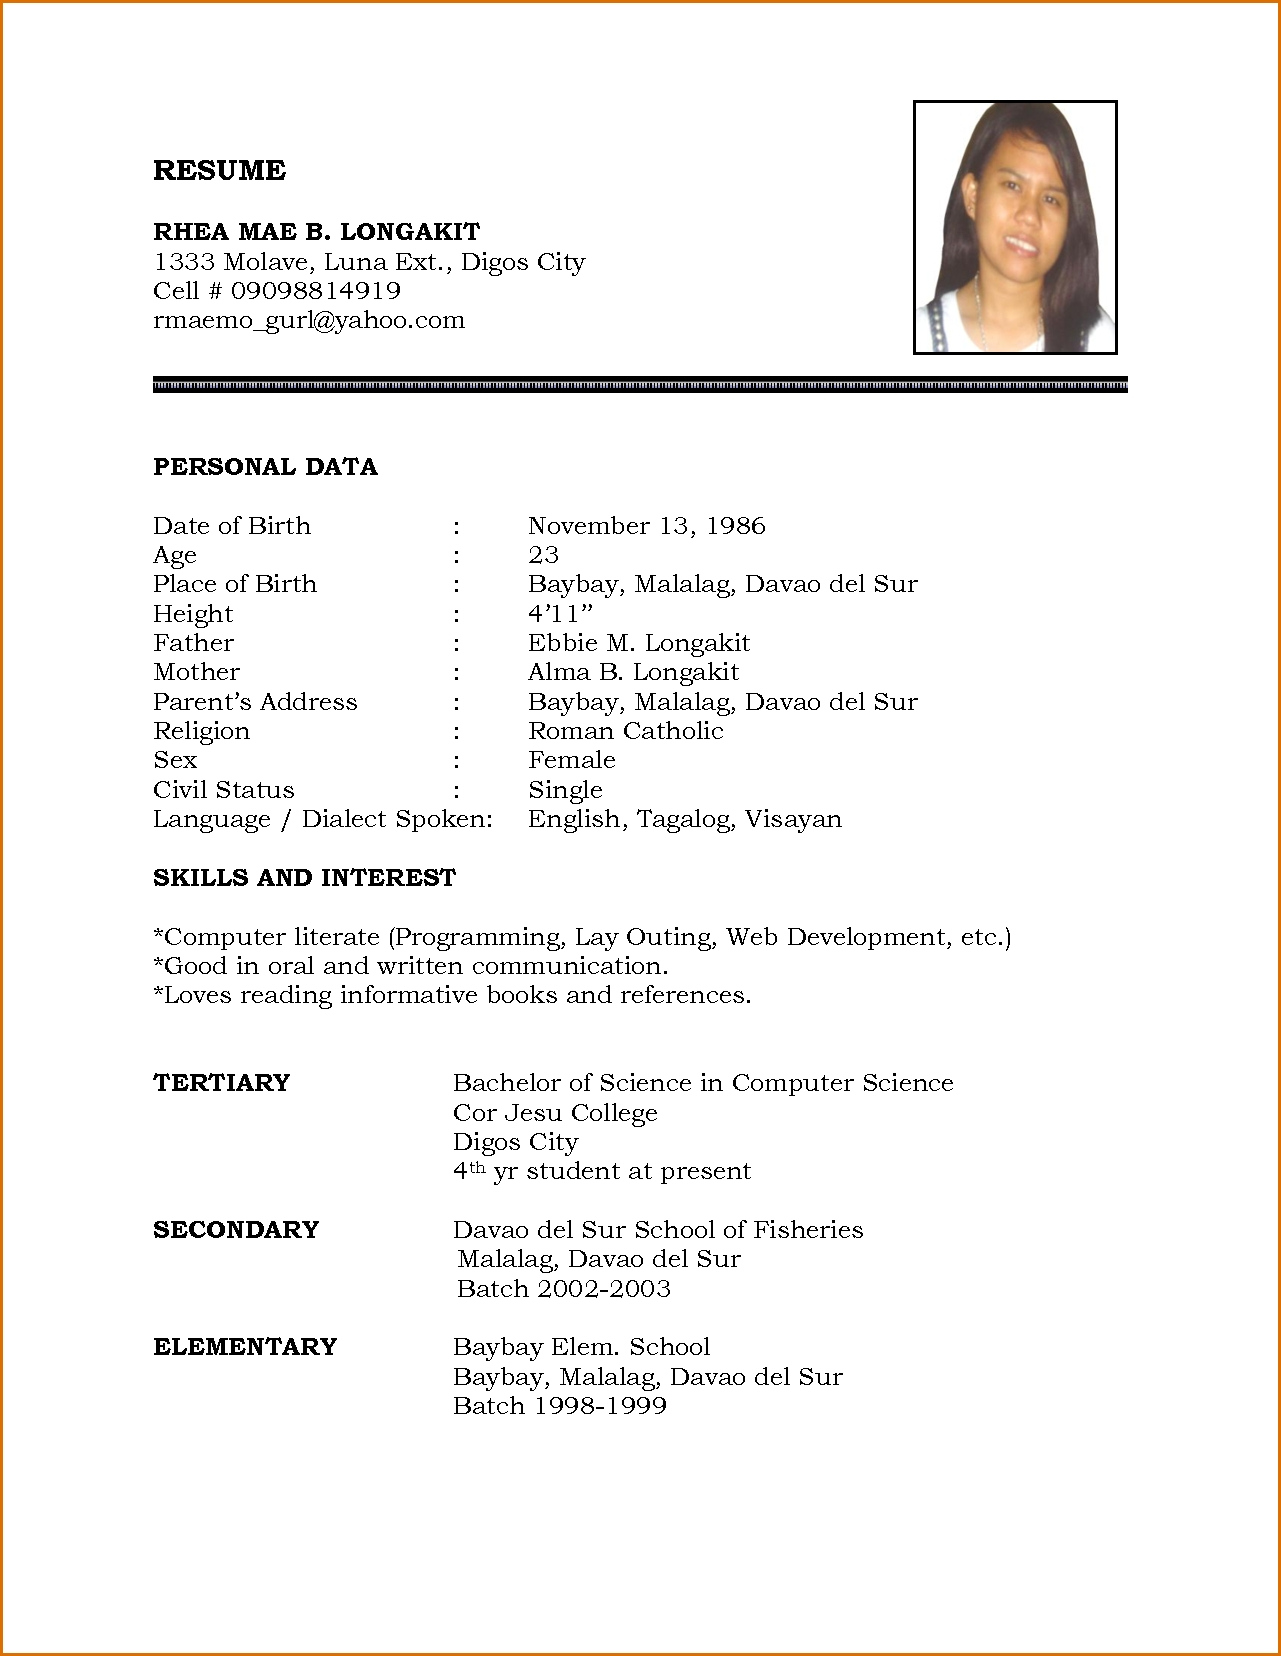 Free Resume Templates India - Resume Examples